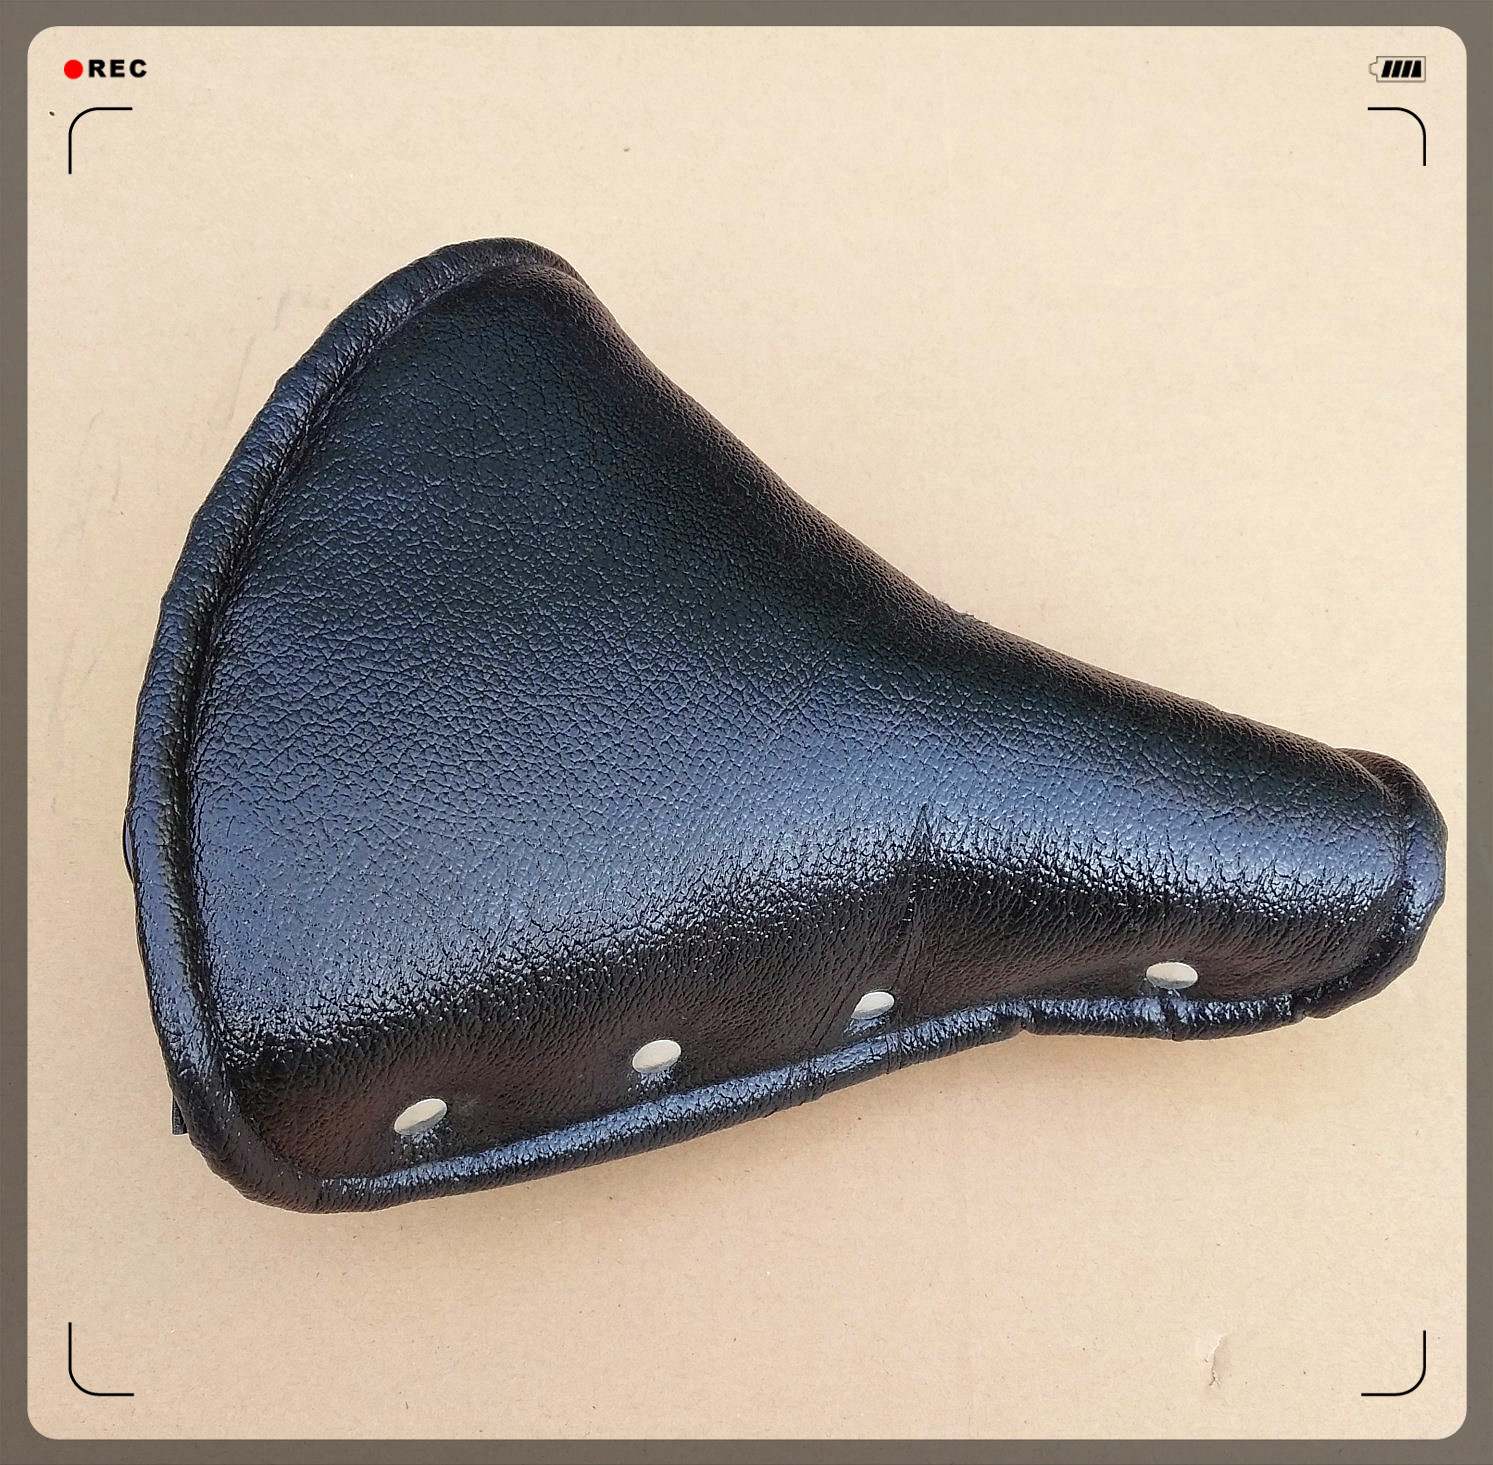 Permanent bicycle cushion 26 inch 28 inch old-fashioned car thicker seat tricycle old saddle universal